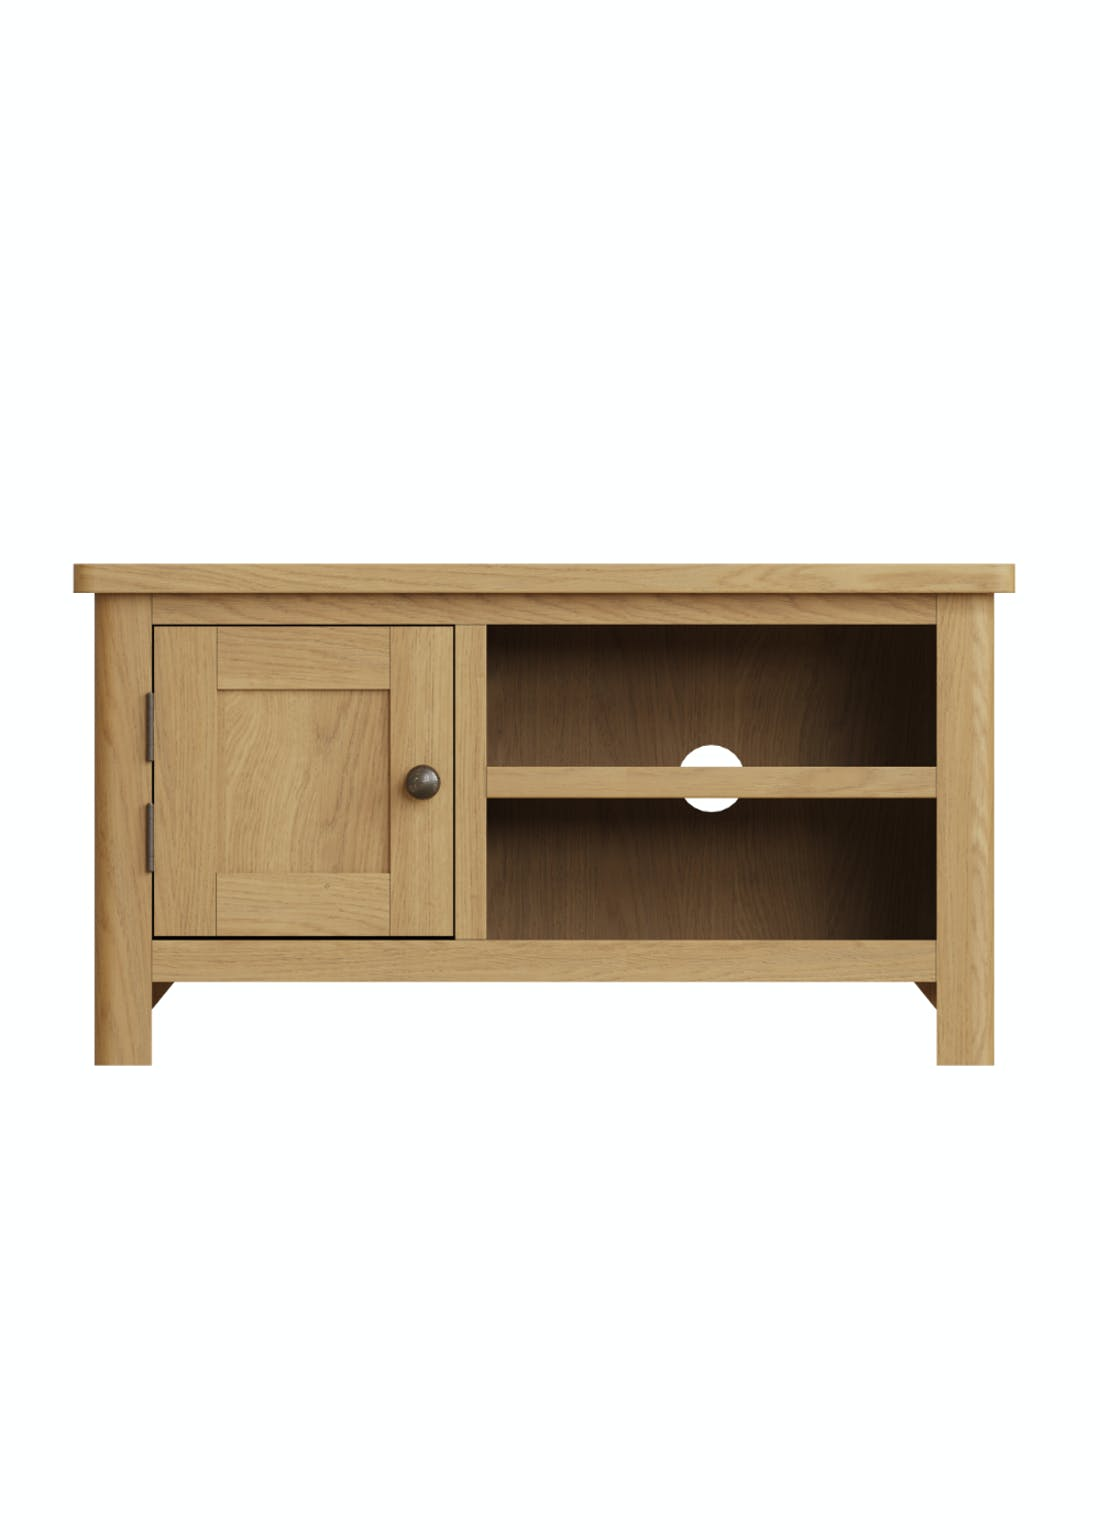 Interiors Direct Reanne TV Unit (90cm x 45cm x 38cm)